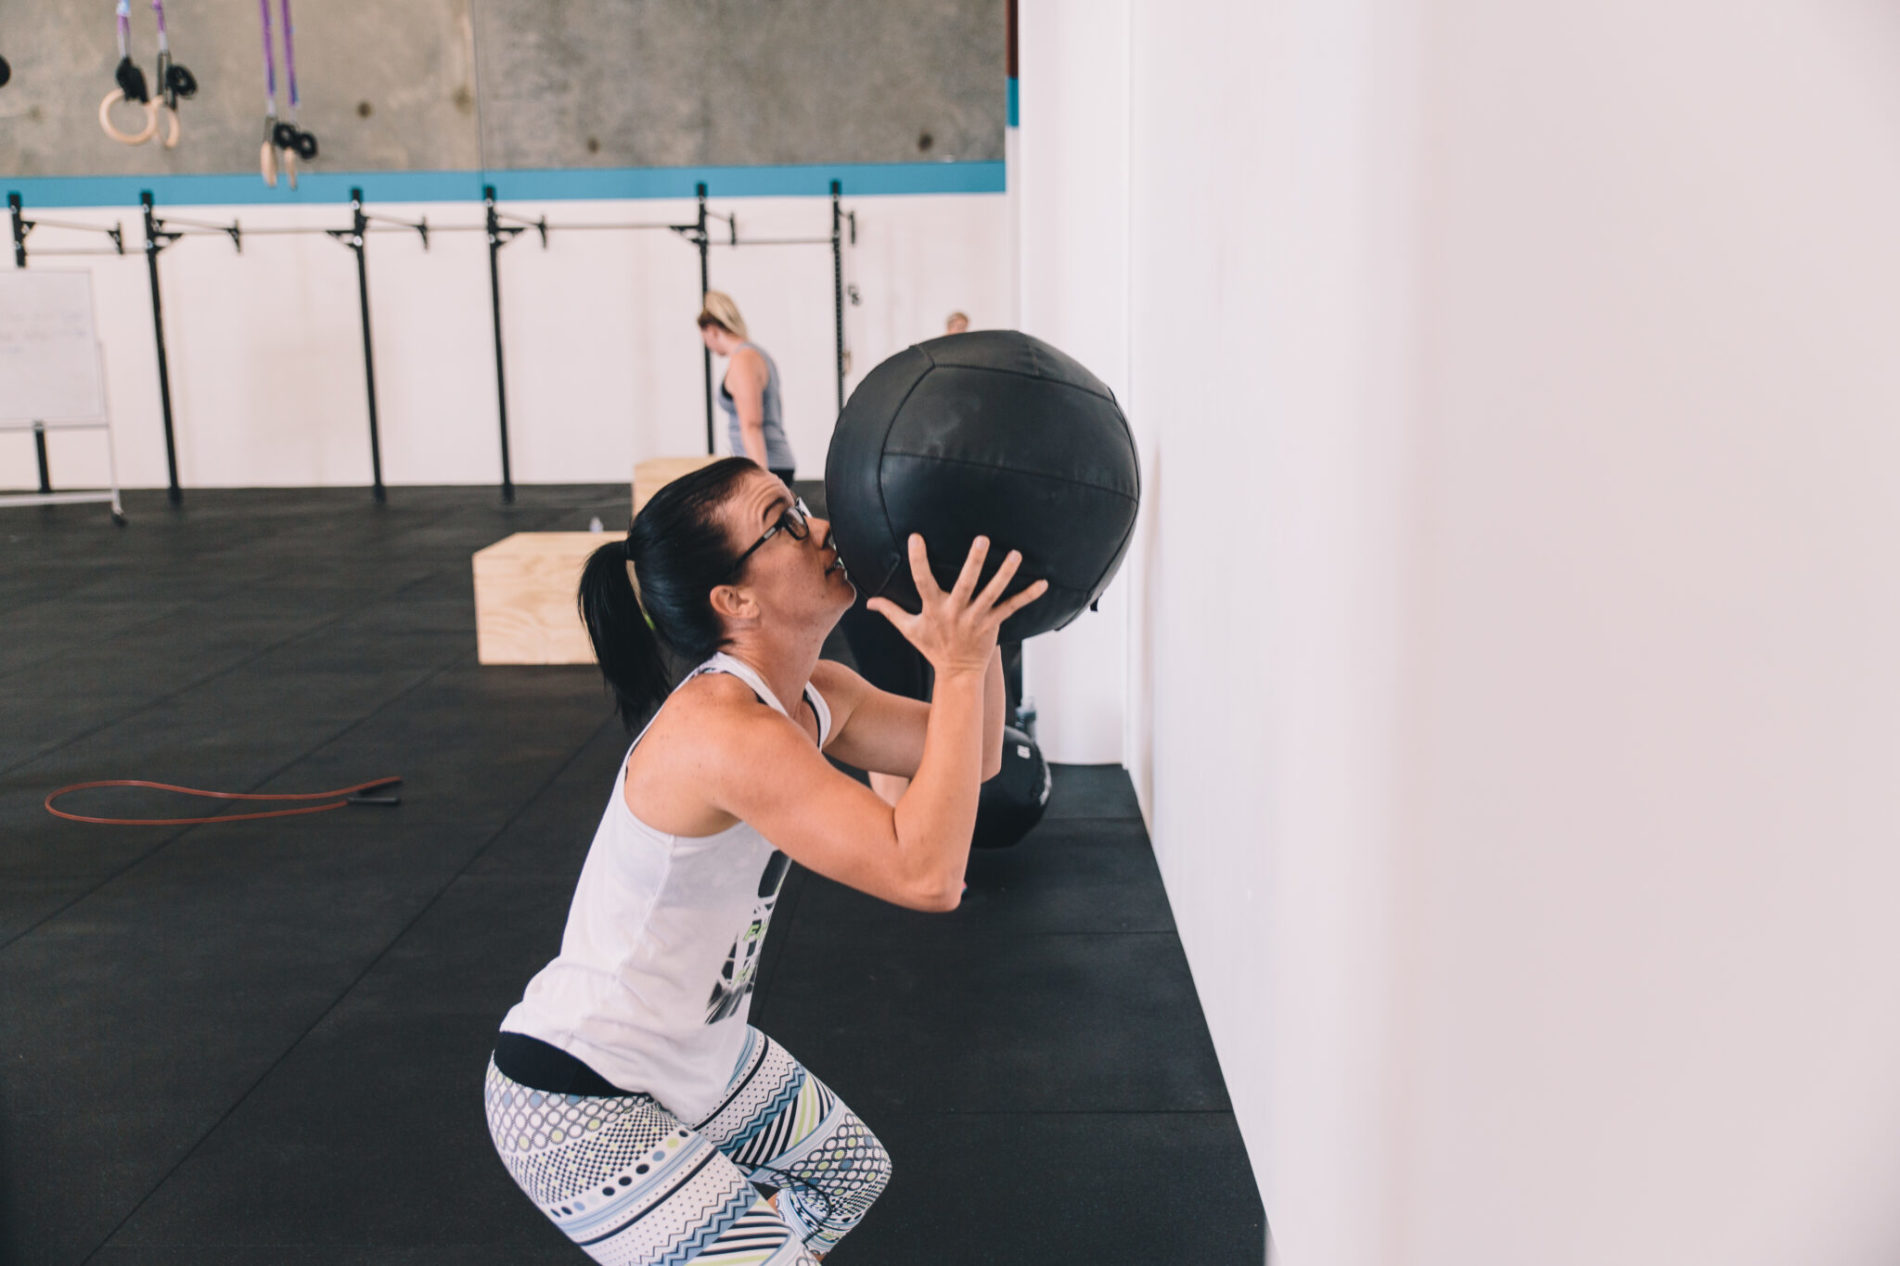 Is CrossFit making females bulky?